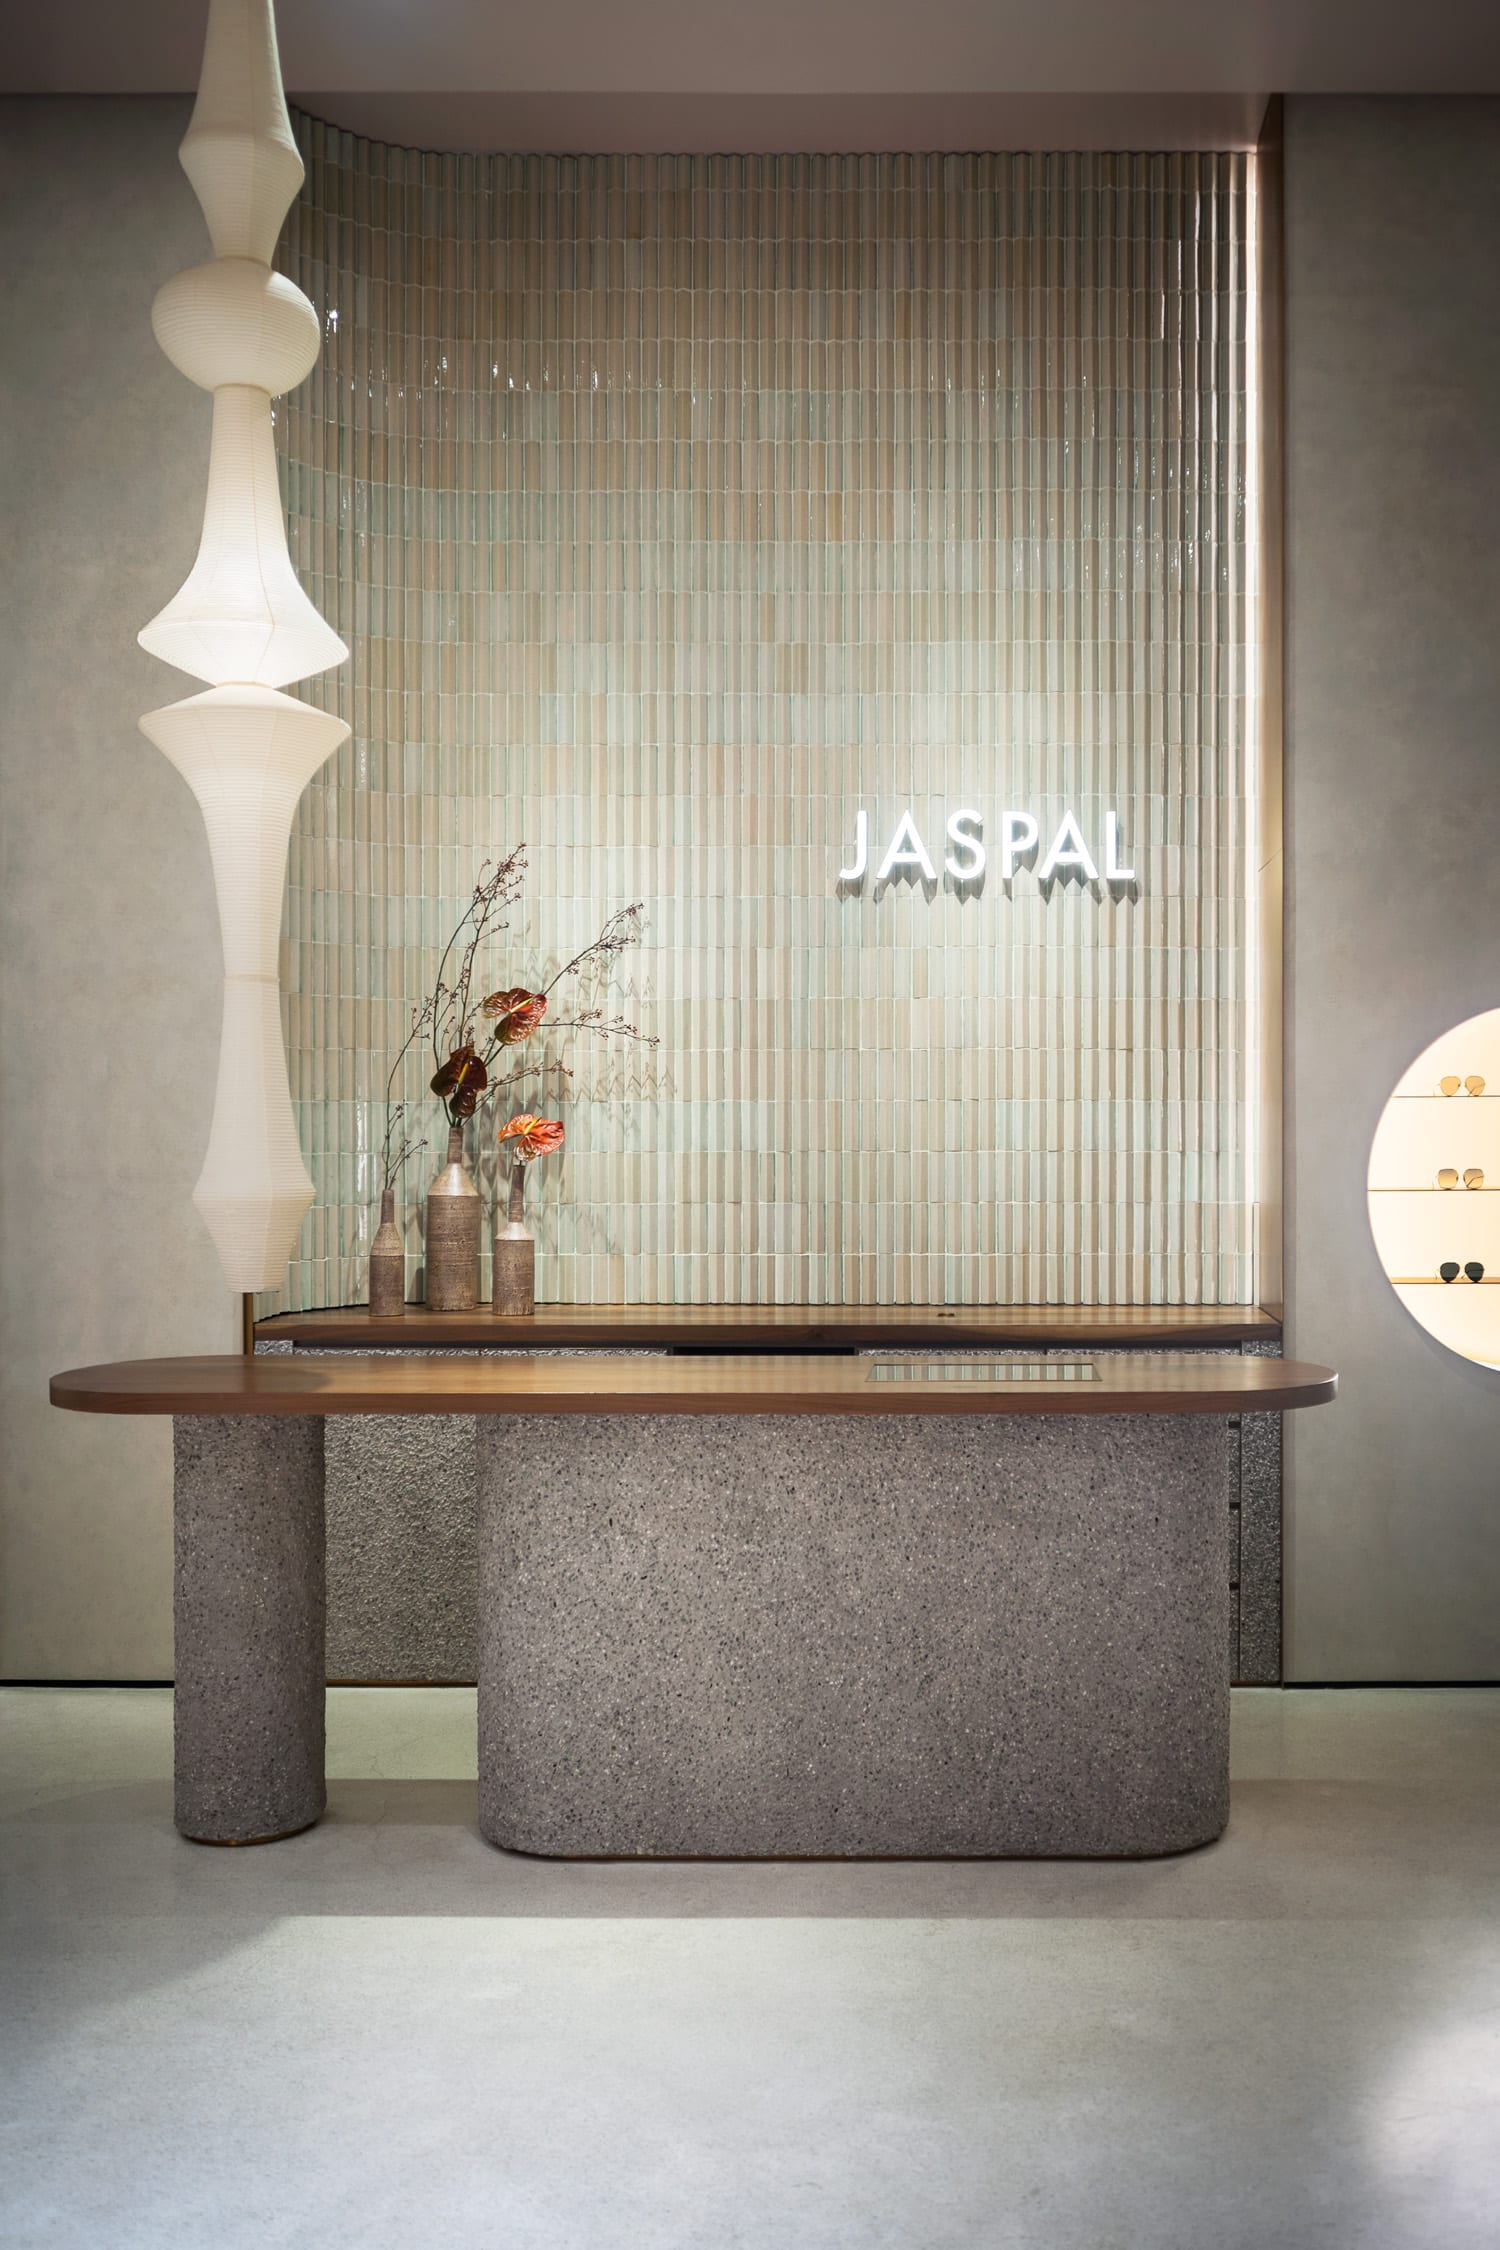 Jaspal Retail Store in Bangkok, Thailand by Studiopepe, Photography by Giuseppe Dinnella | Yellowtrace